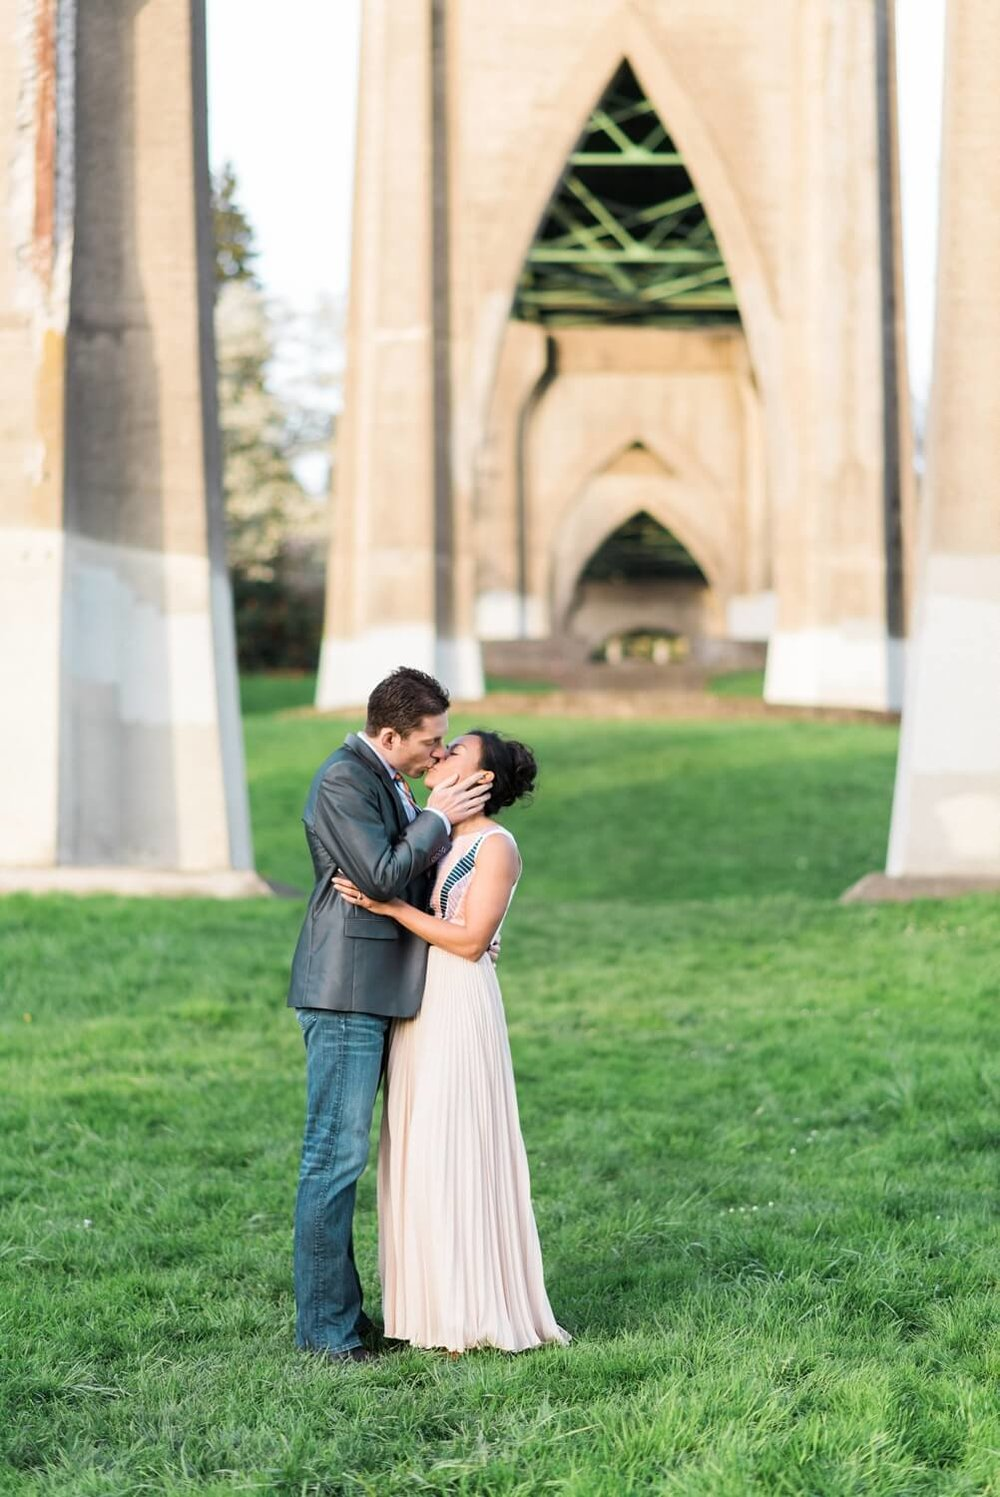 portland-waterfront-engagement-cherry-blossom-cathedral-park-sokhorn-jay-290_cr.jpg